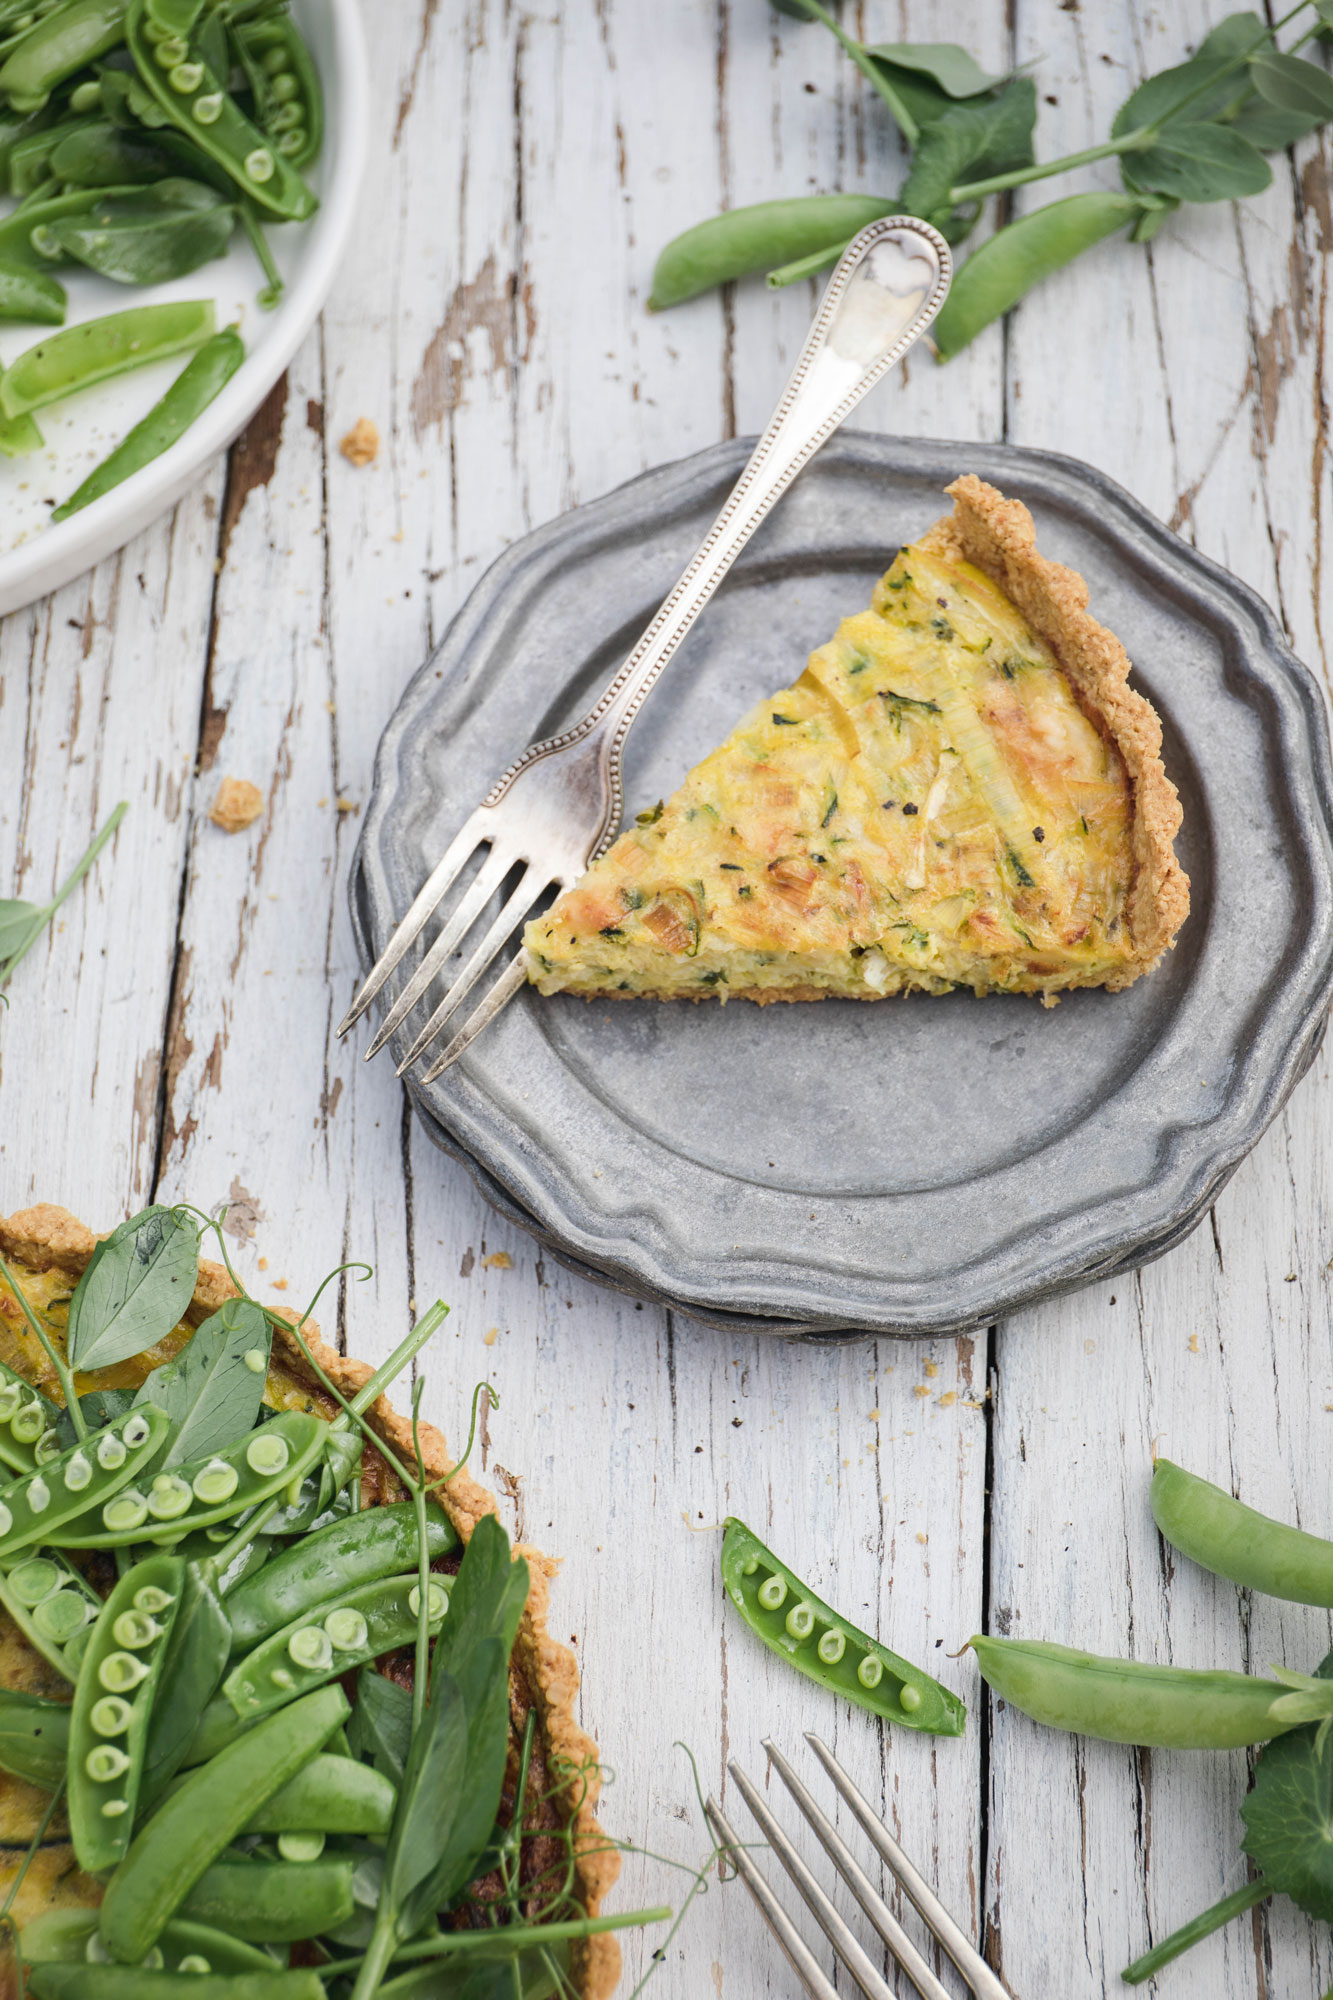 Gluten free summer picnic tart with leek, sharp cheddar and zucchini. Topped with snap pea salad.